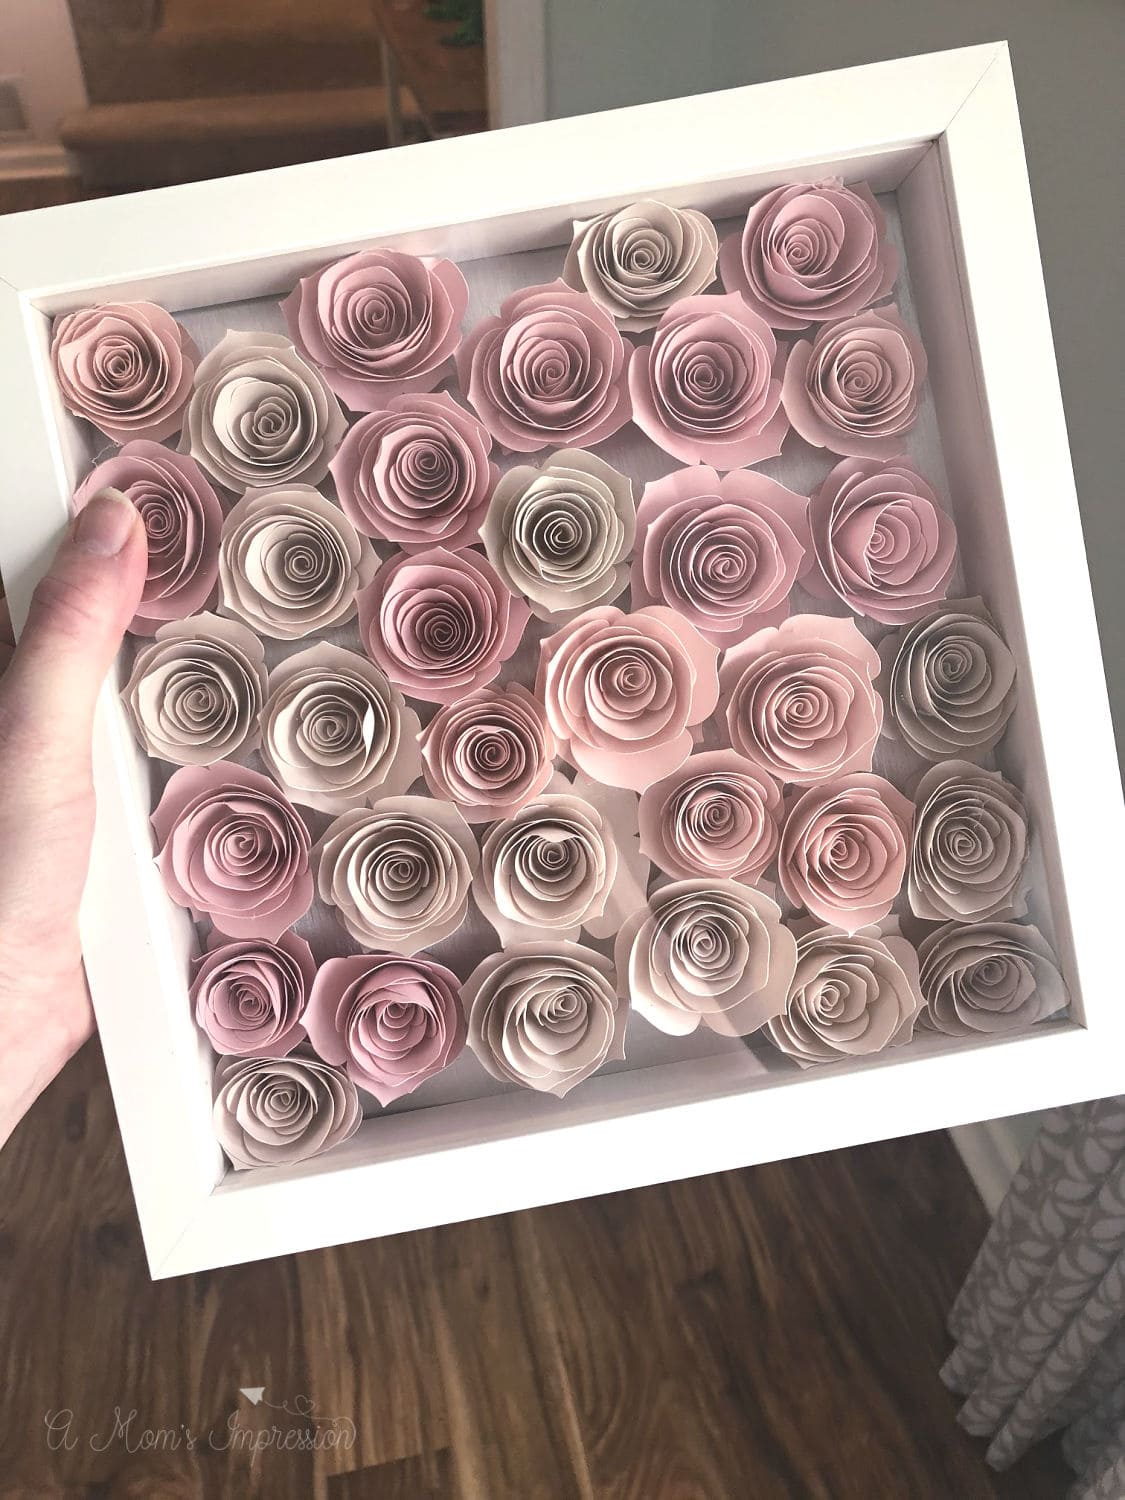 a frame full of paper roses